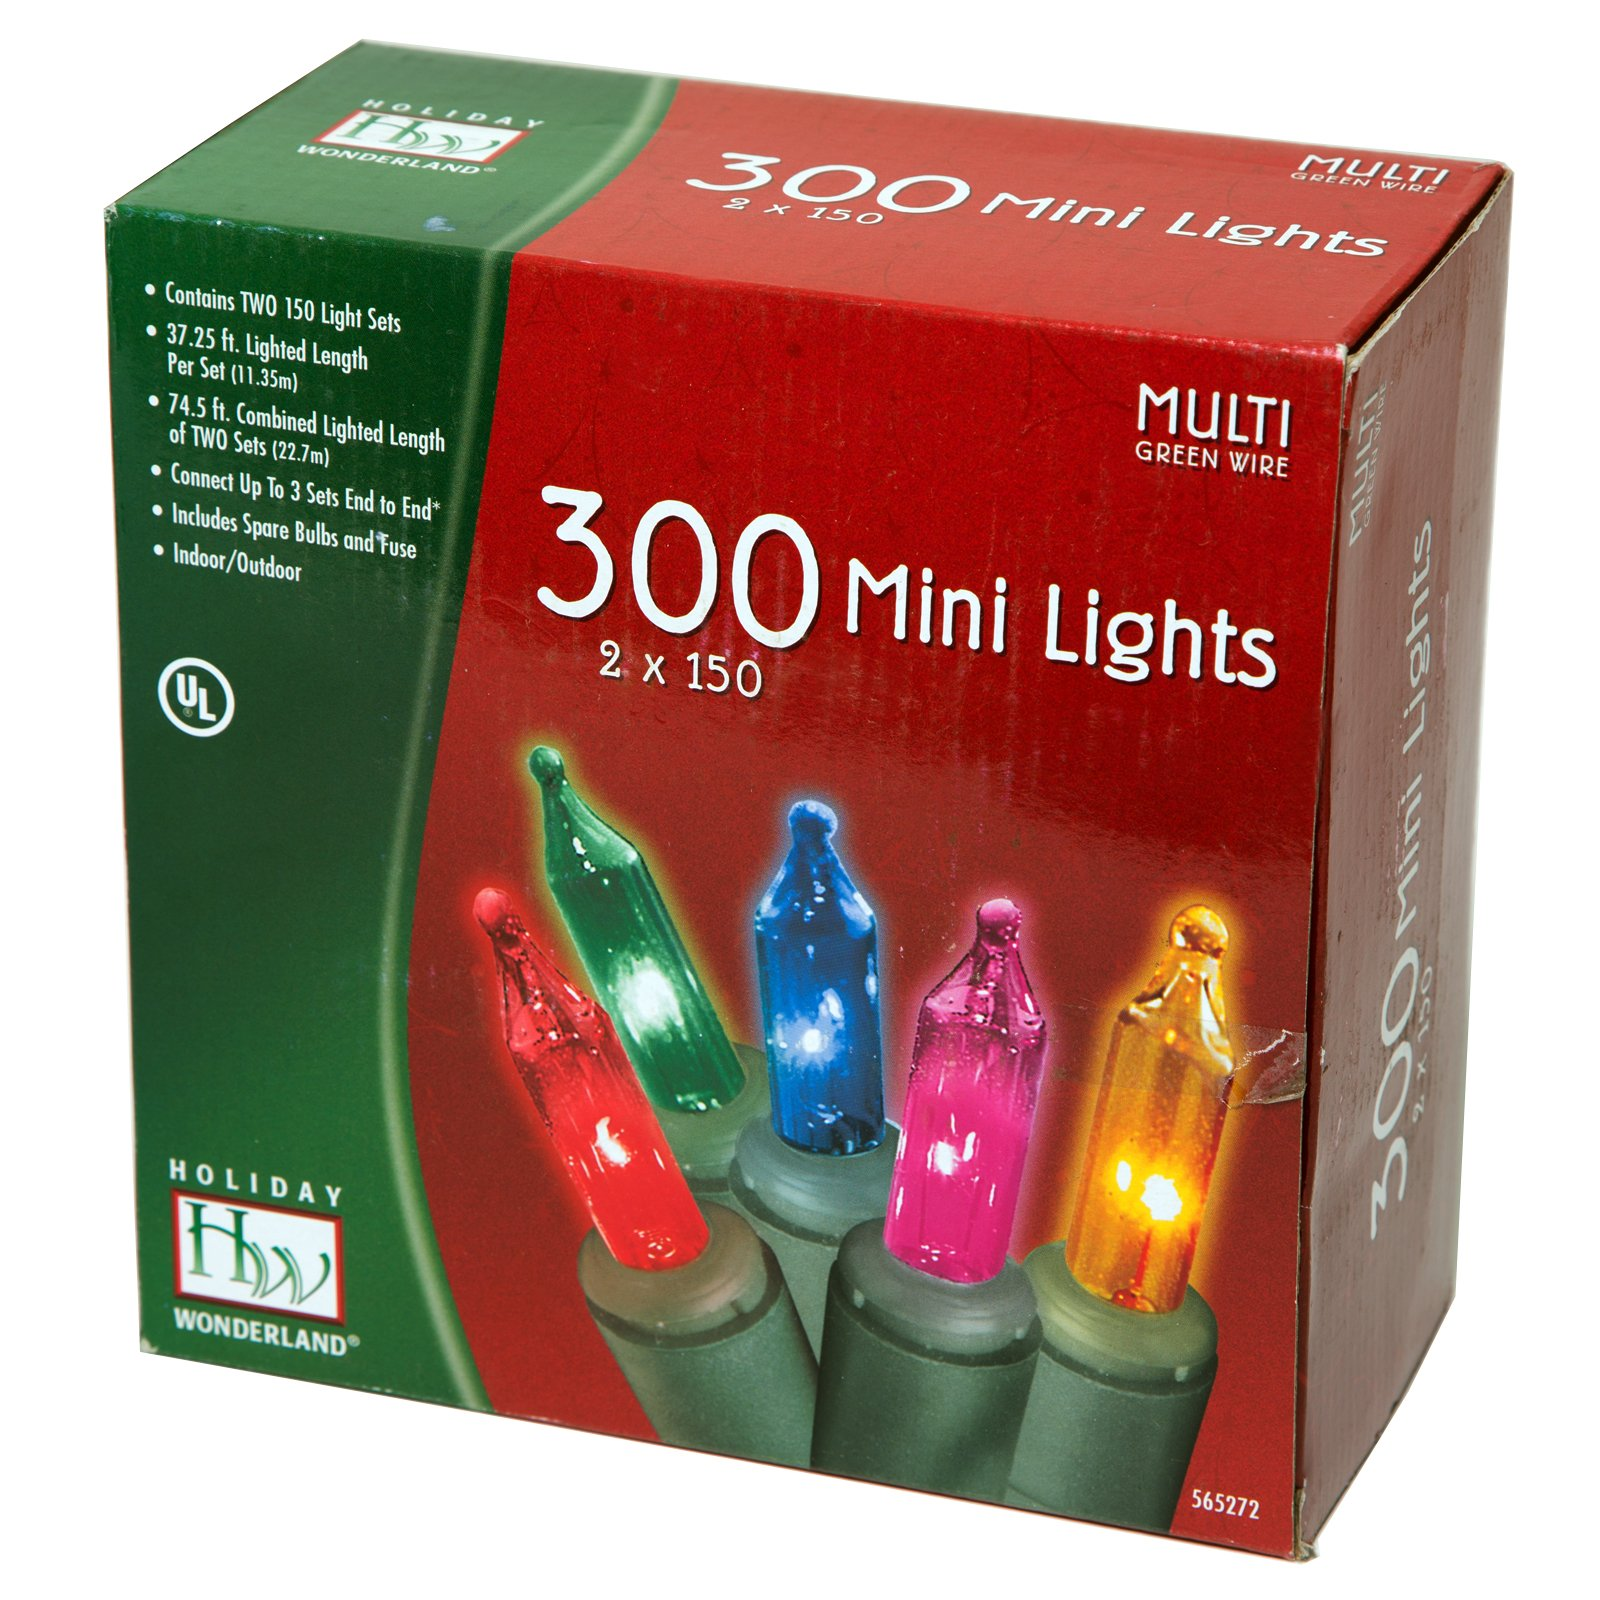 Multi Colored Christmas Lights: Amazon.com